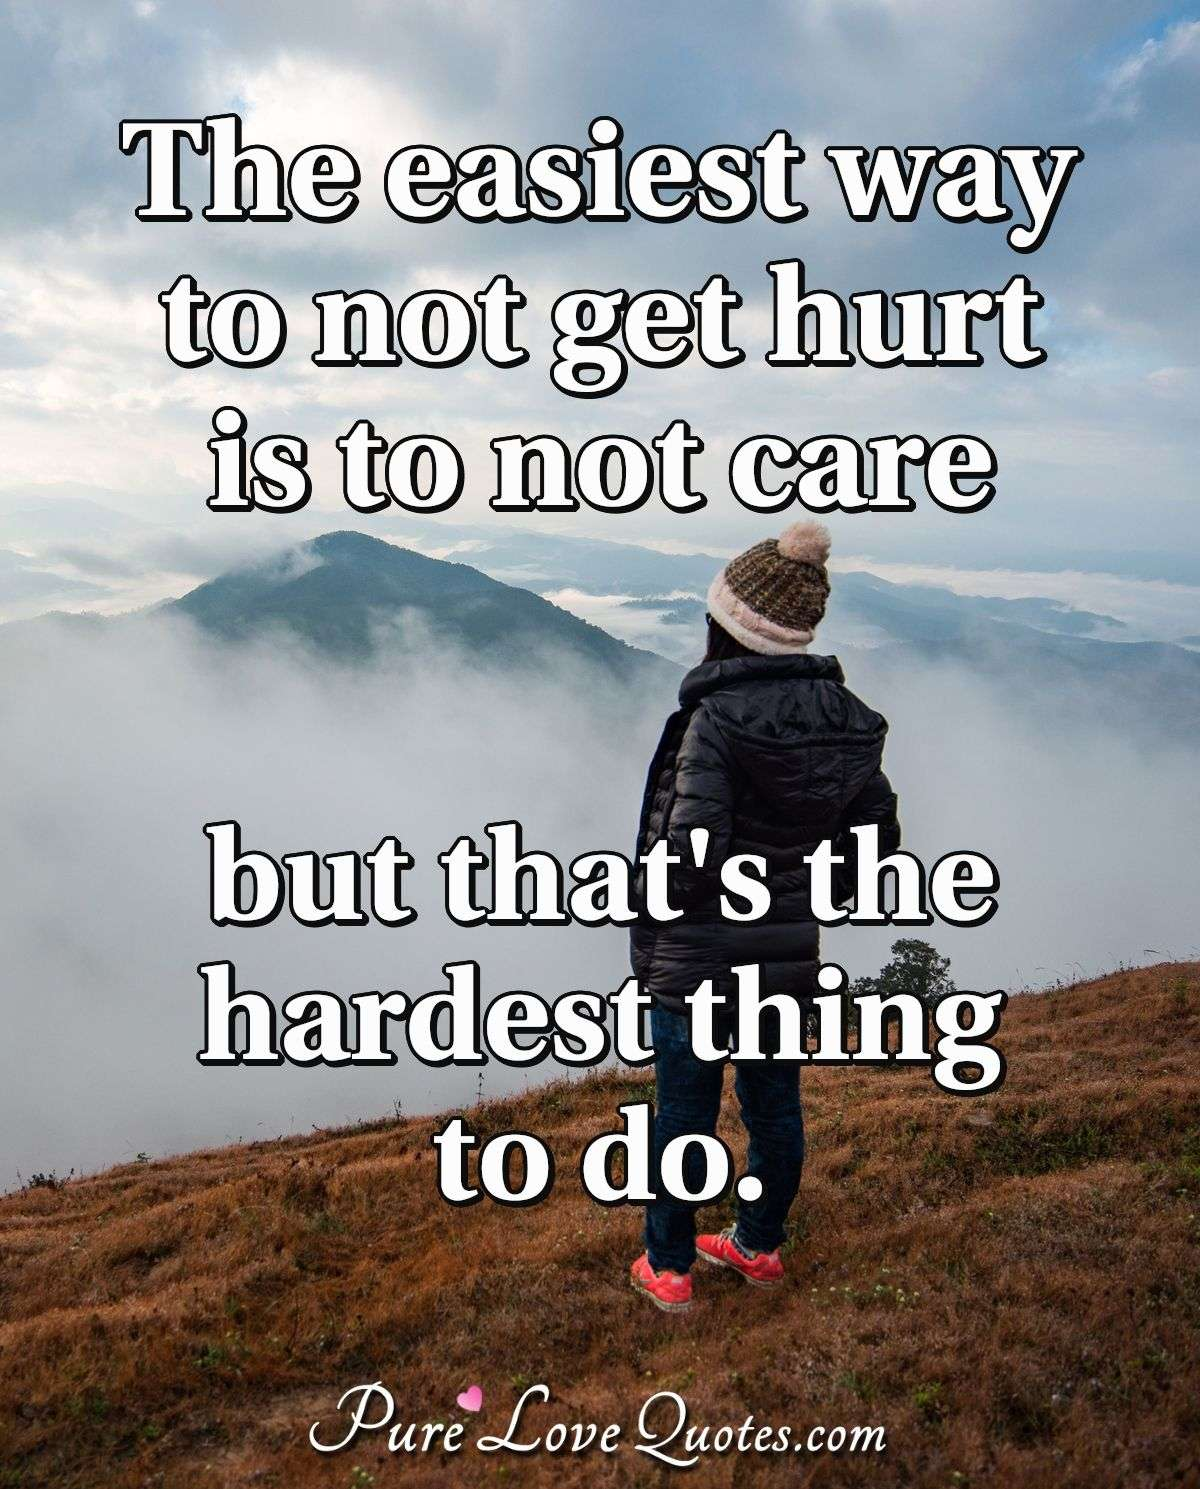 The easiest way to not get hurt is to not care, but that's the hardest thing to do. - Anonymous